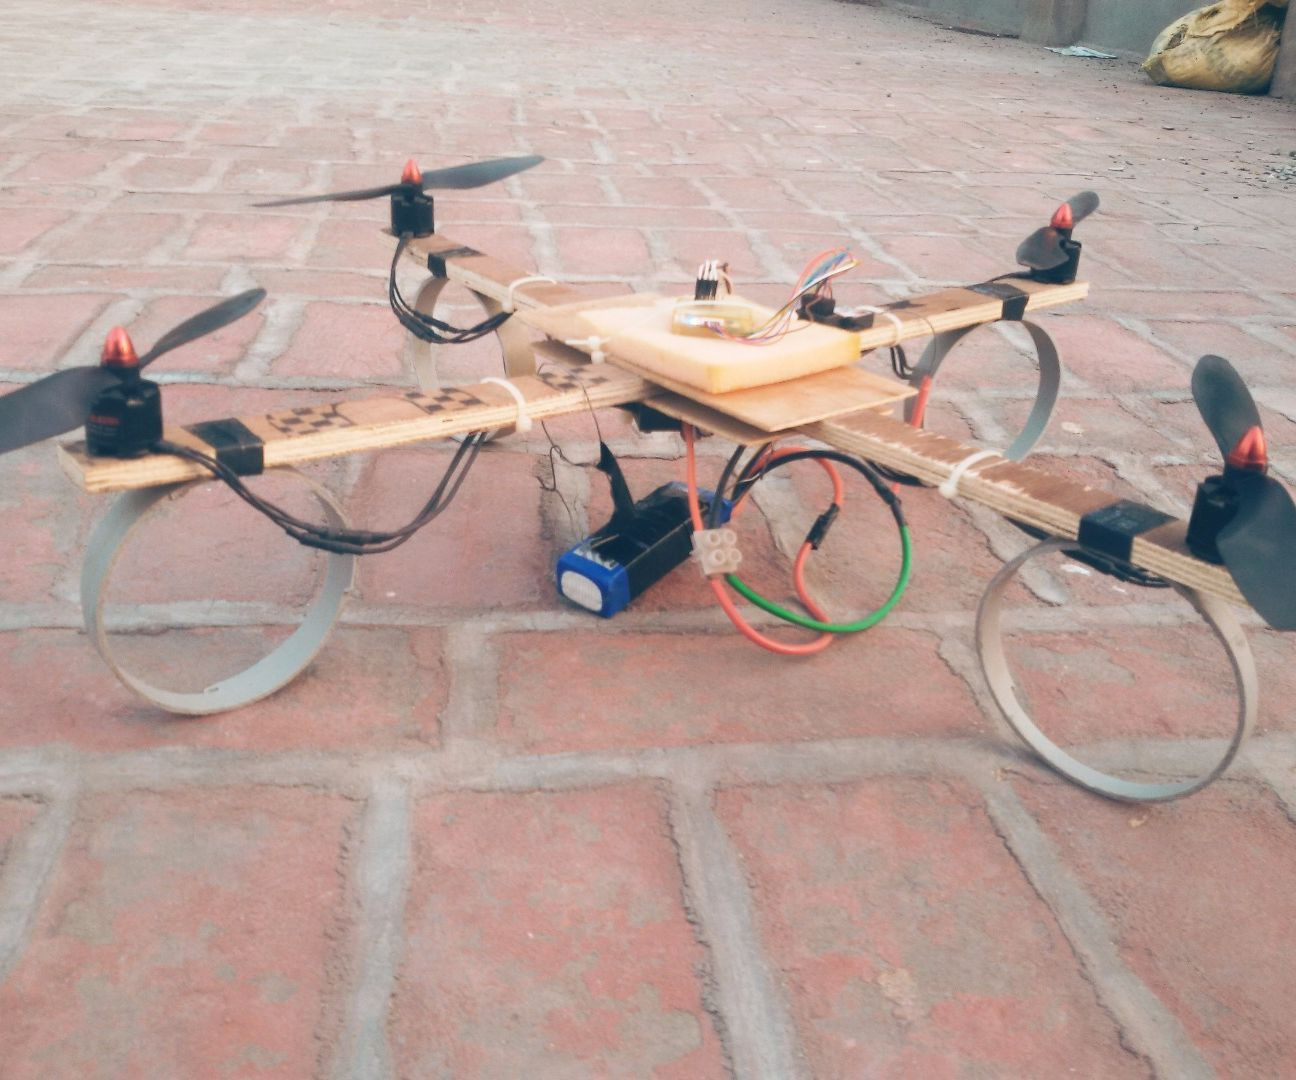 Diy Drone  DIY Quadcopter From Scratch